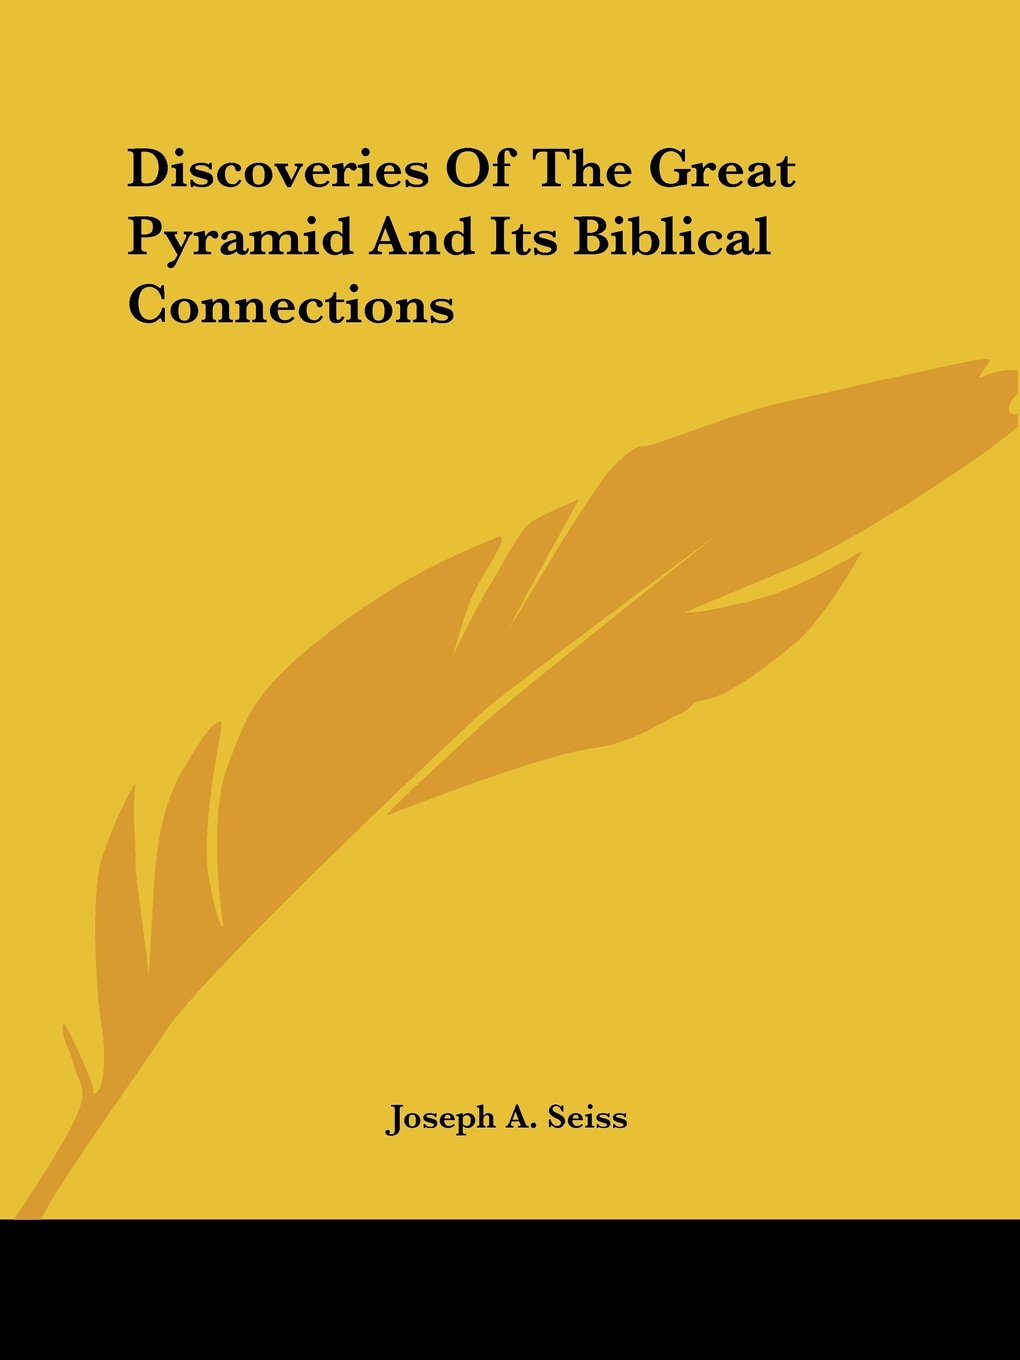 Discoveries Of The Great Pyramid And Its Biblical Connections pdf